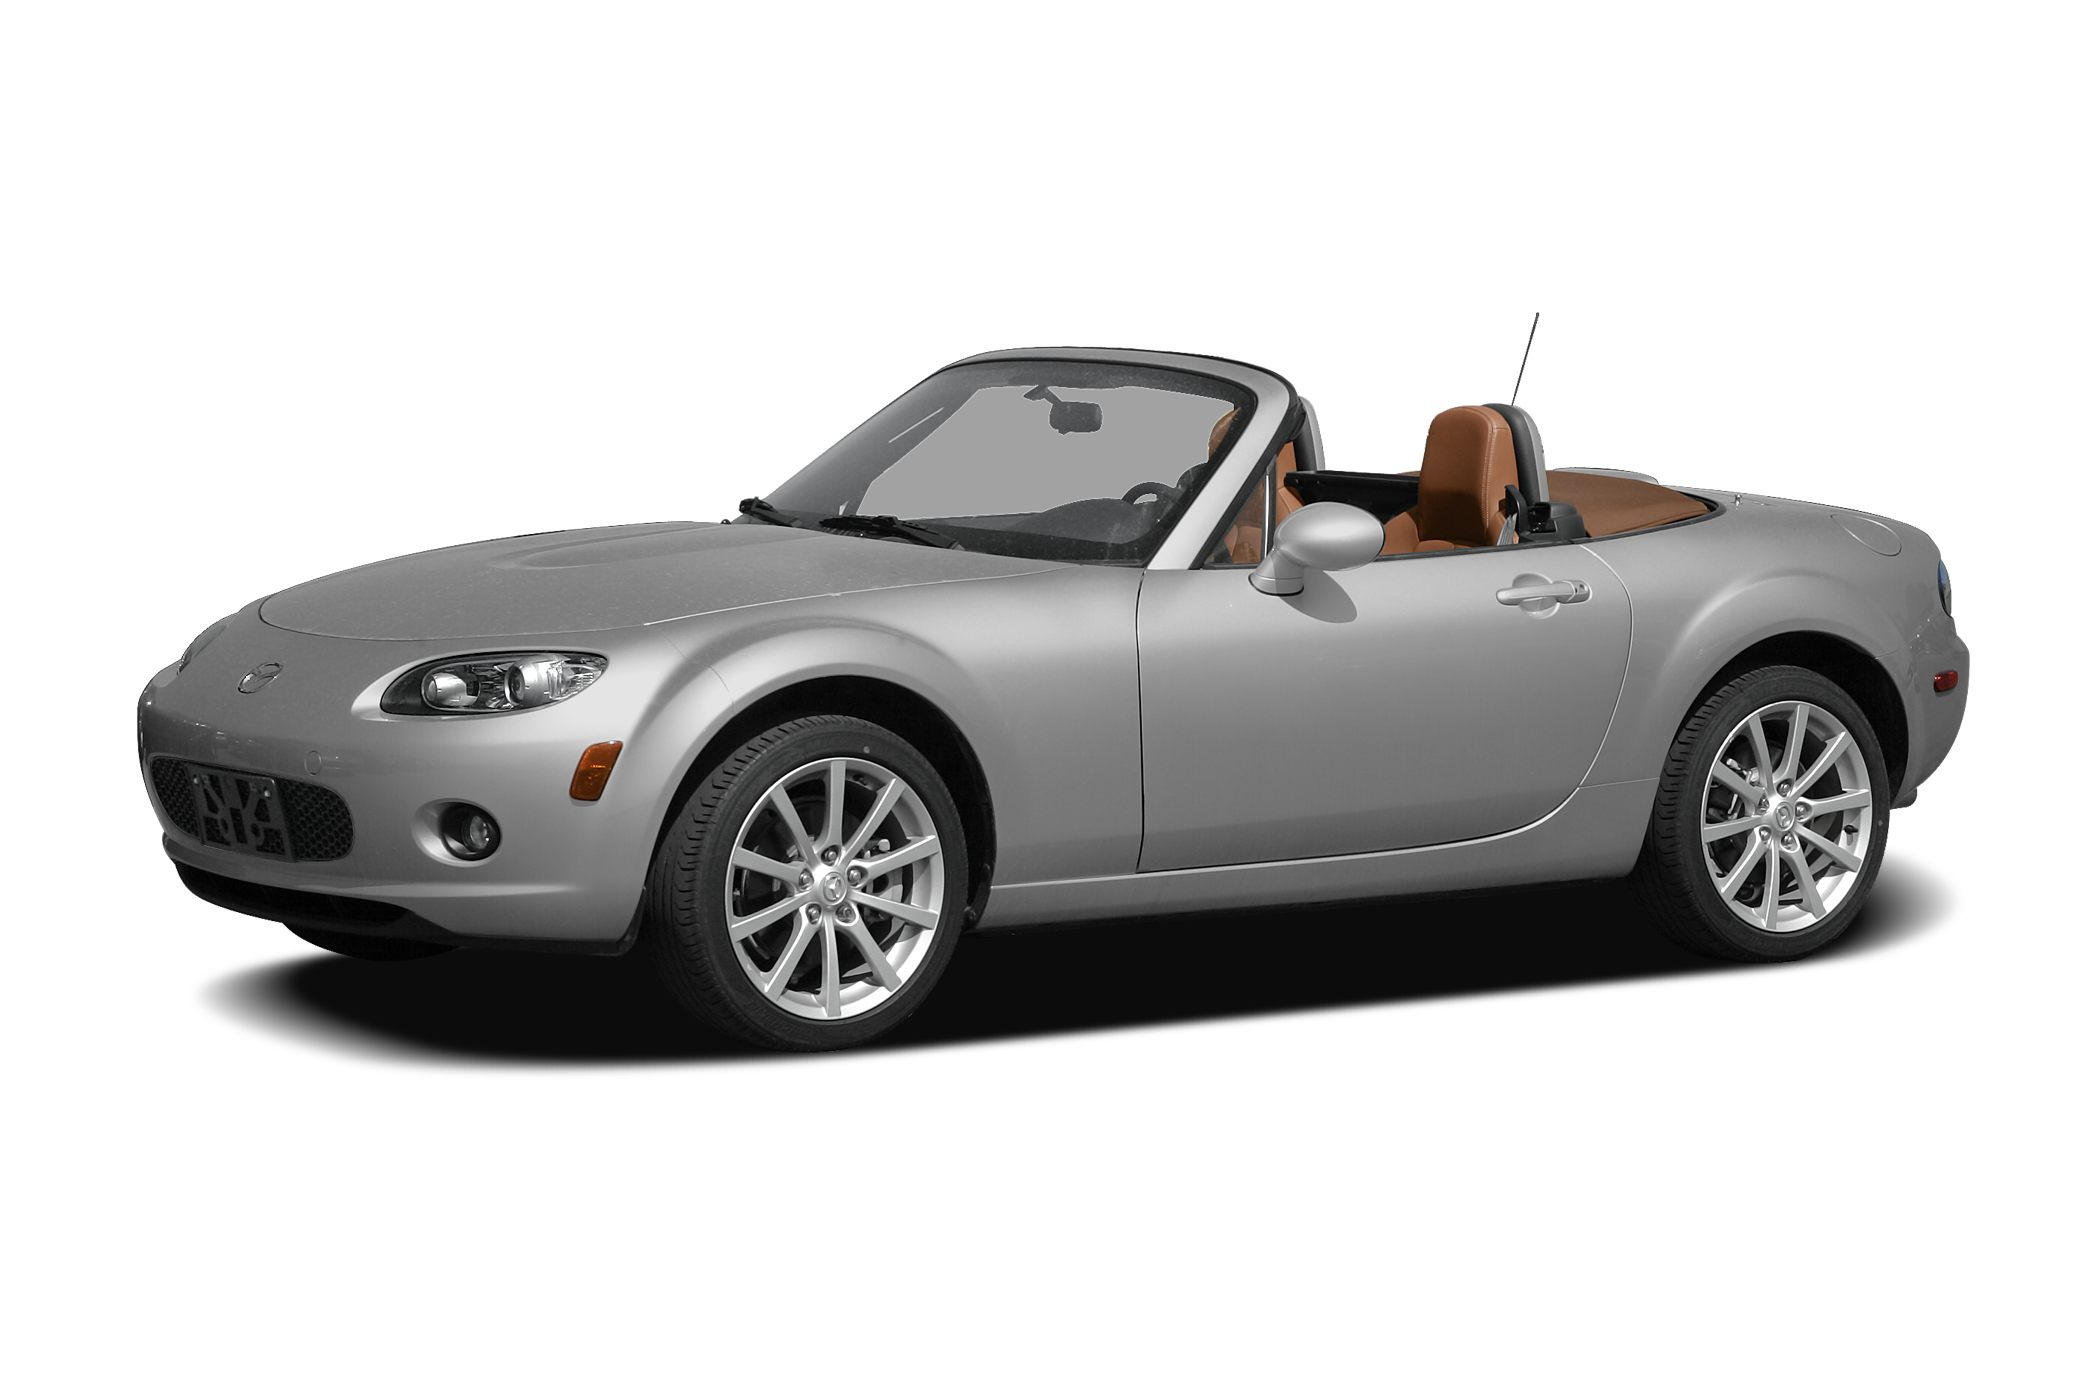 2008 Mazda Miata MX-5 Grand Touring Convertible for sale in Hattiesburg for $15,885 with 55,798 miles.